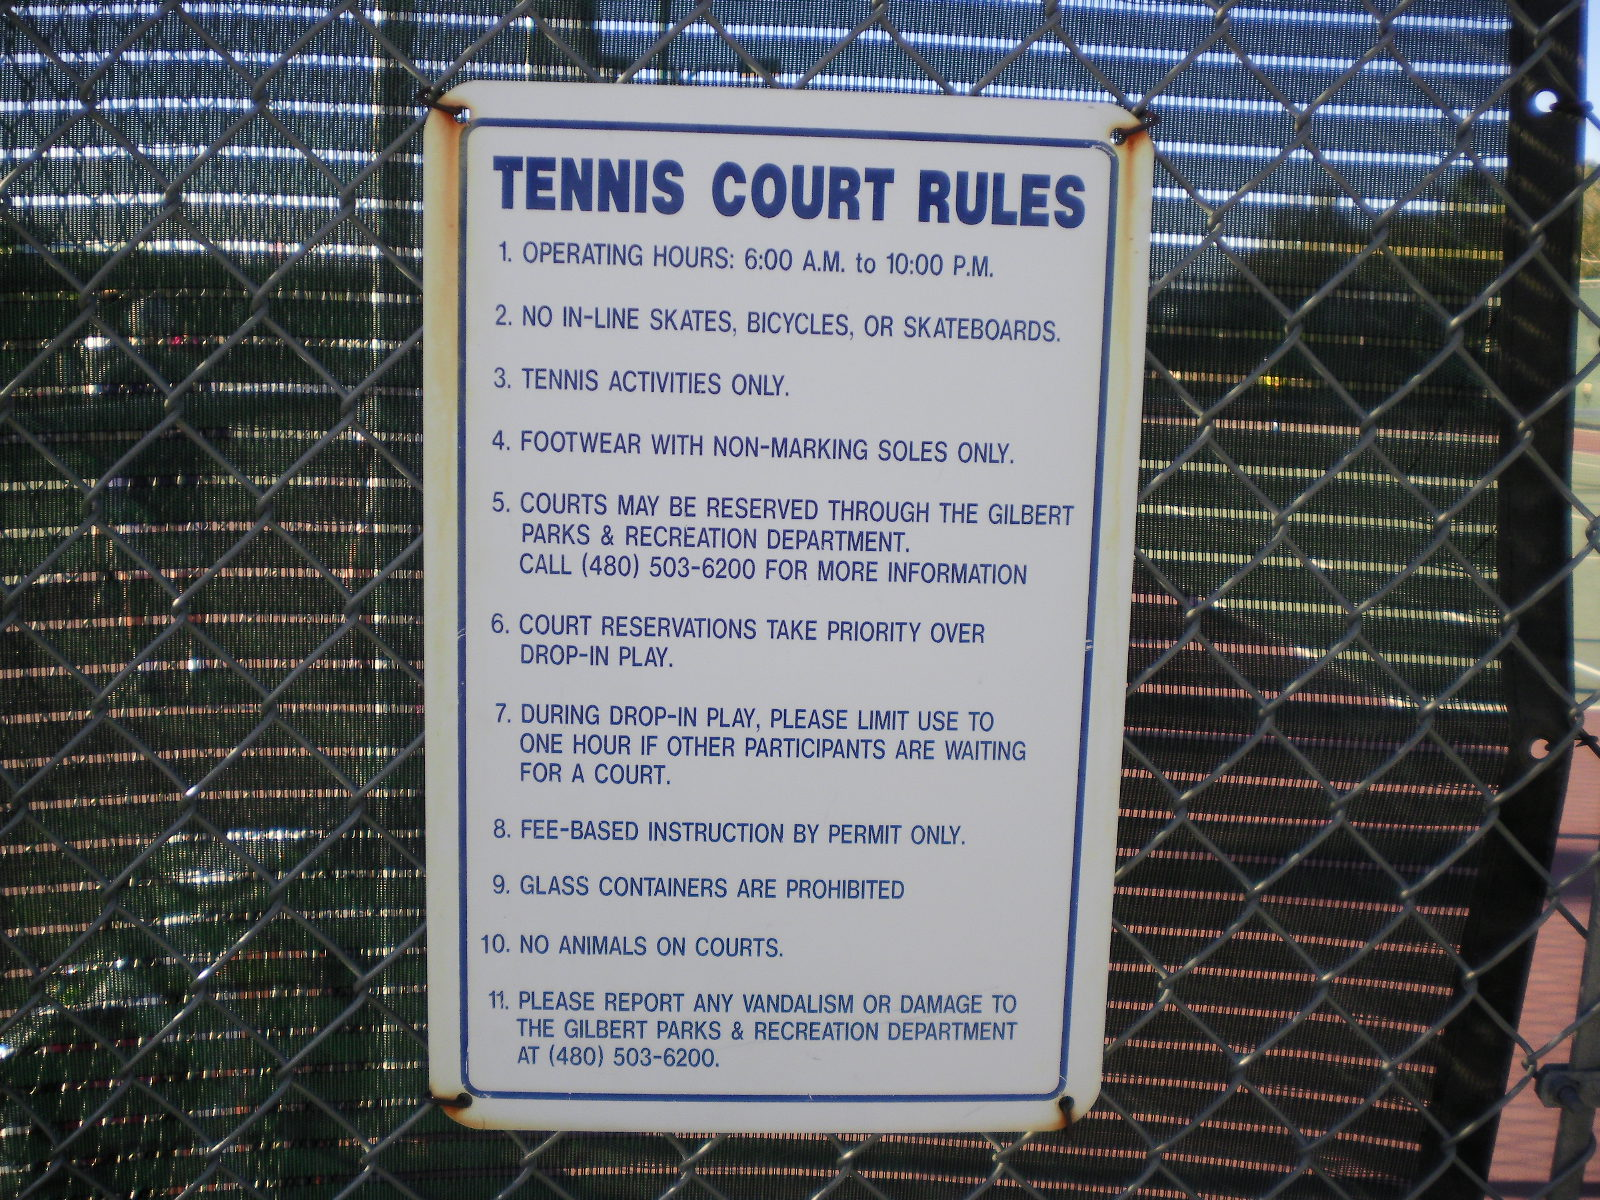 Tennis ladder rules bing images for 10 table tennis rules